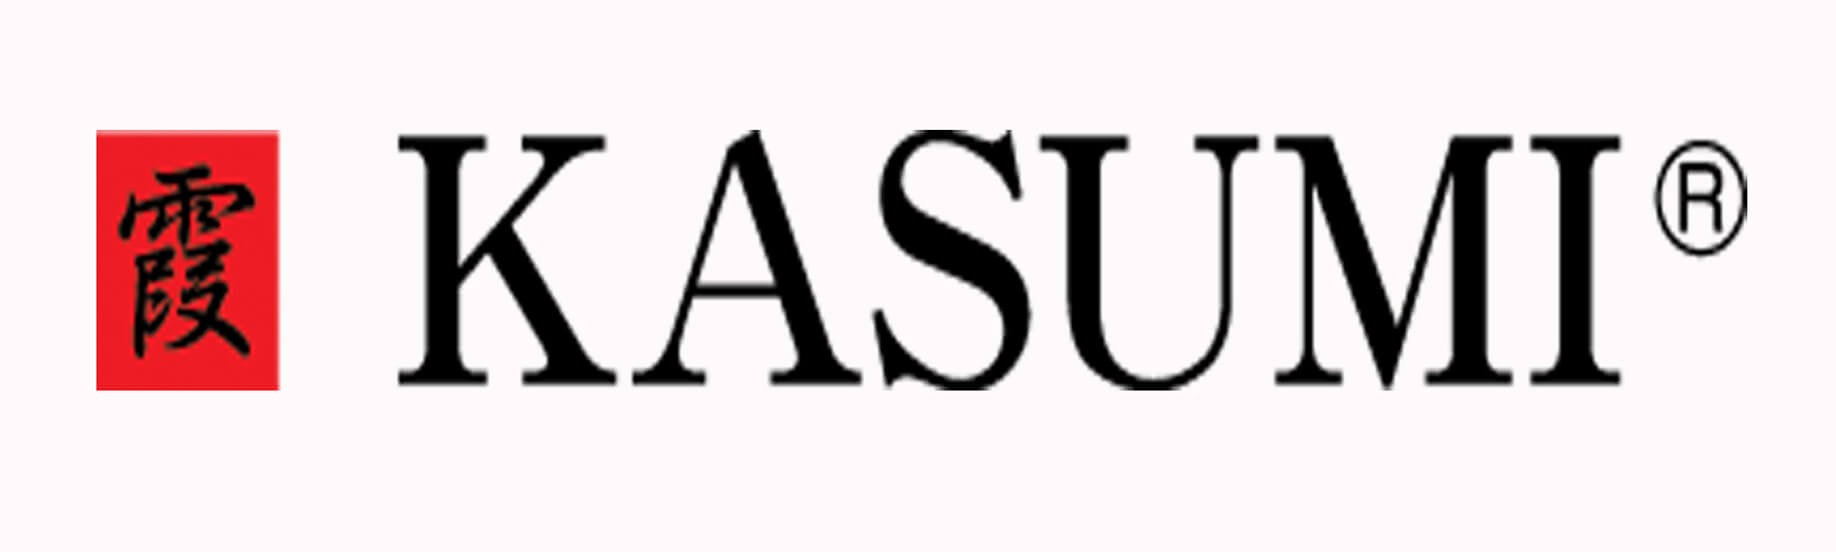 https://cravepr.com/wp-content/uploads/2010/11/Kasumi-logo-cropped.jpg